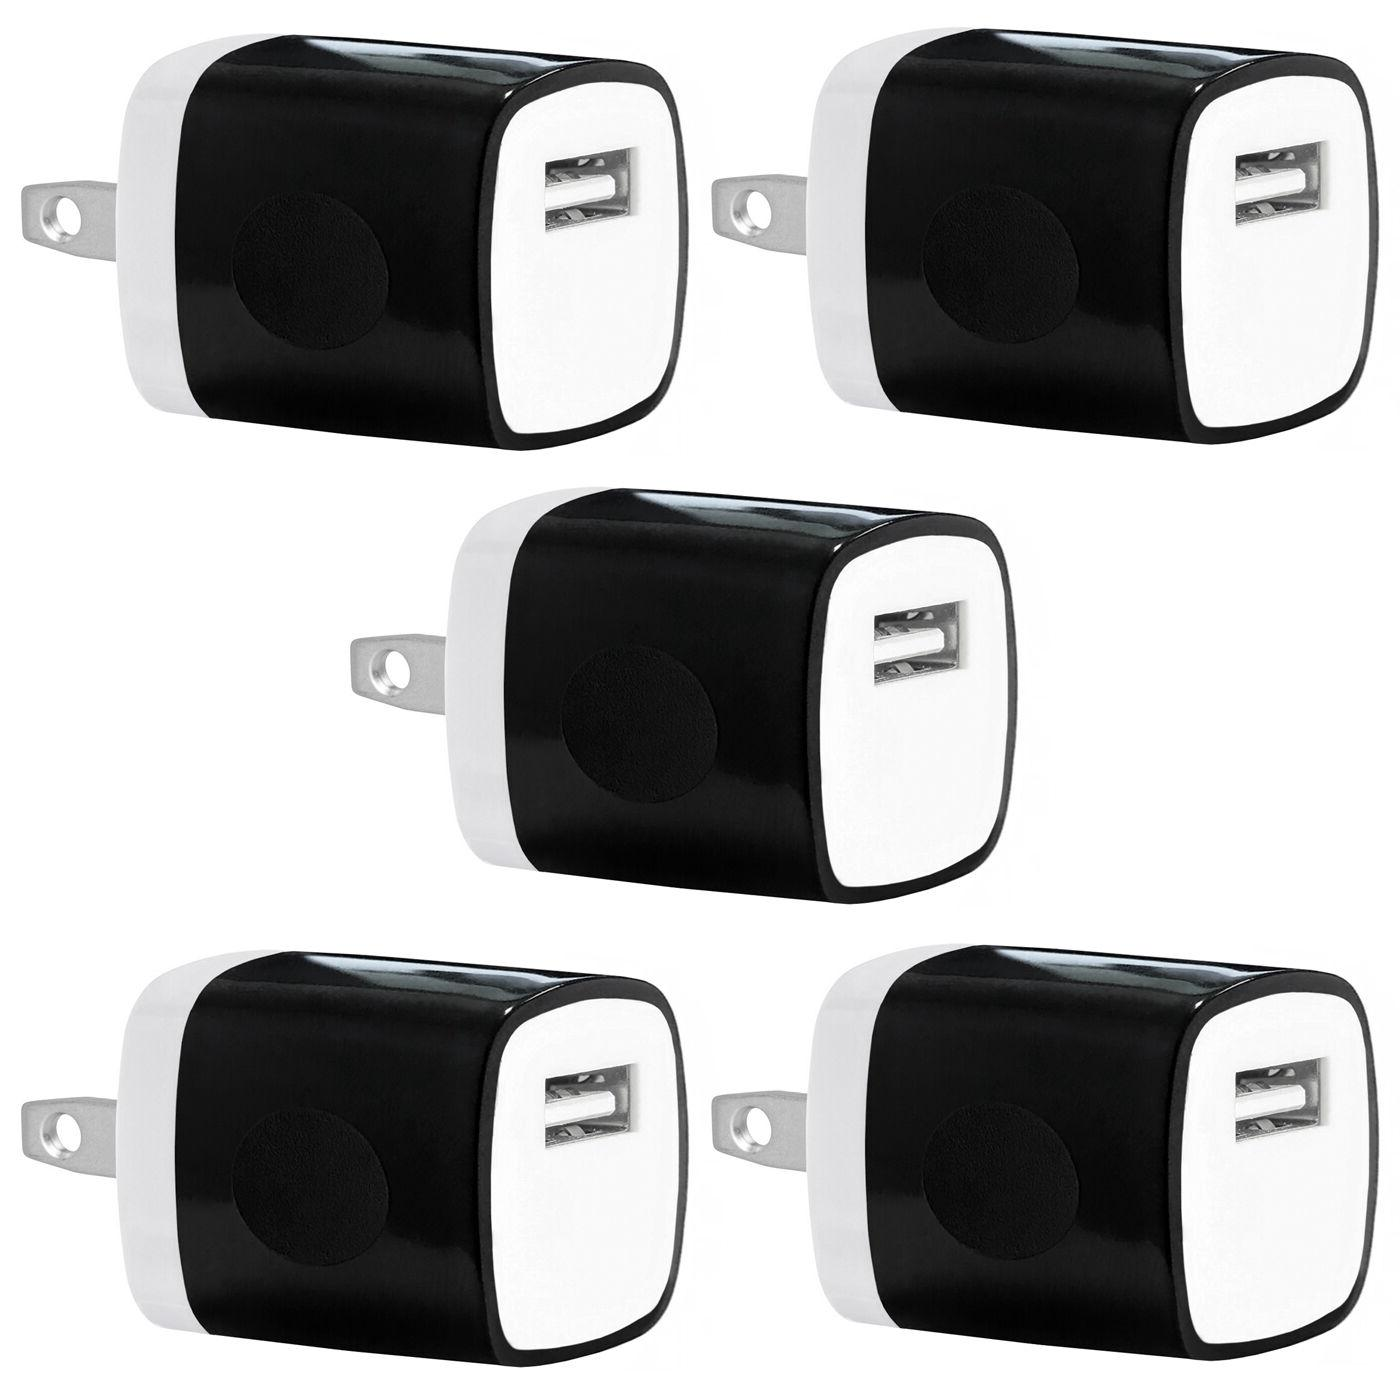 5x Pack 1A Universal USB Travel Wall Charger Power Adapter f